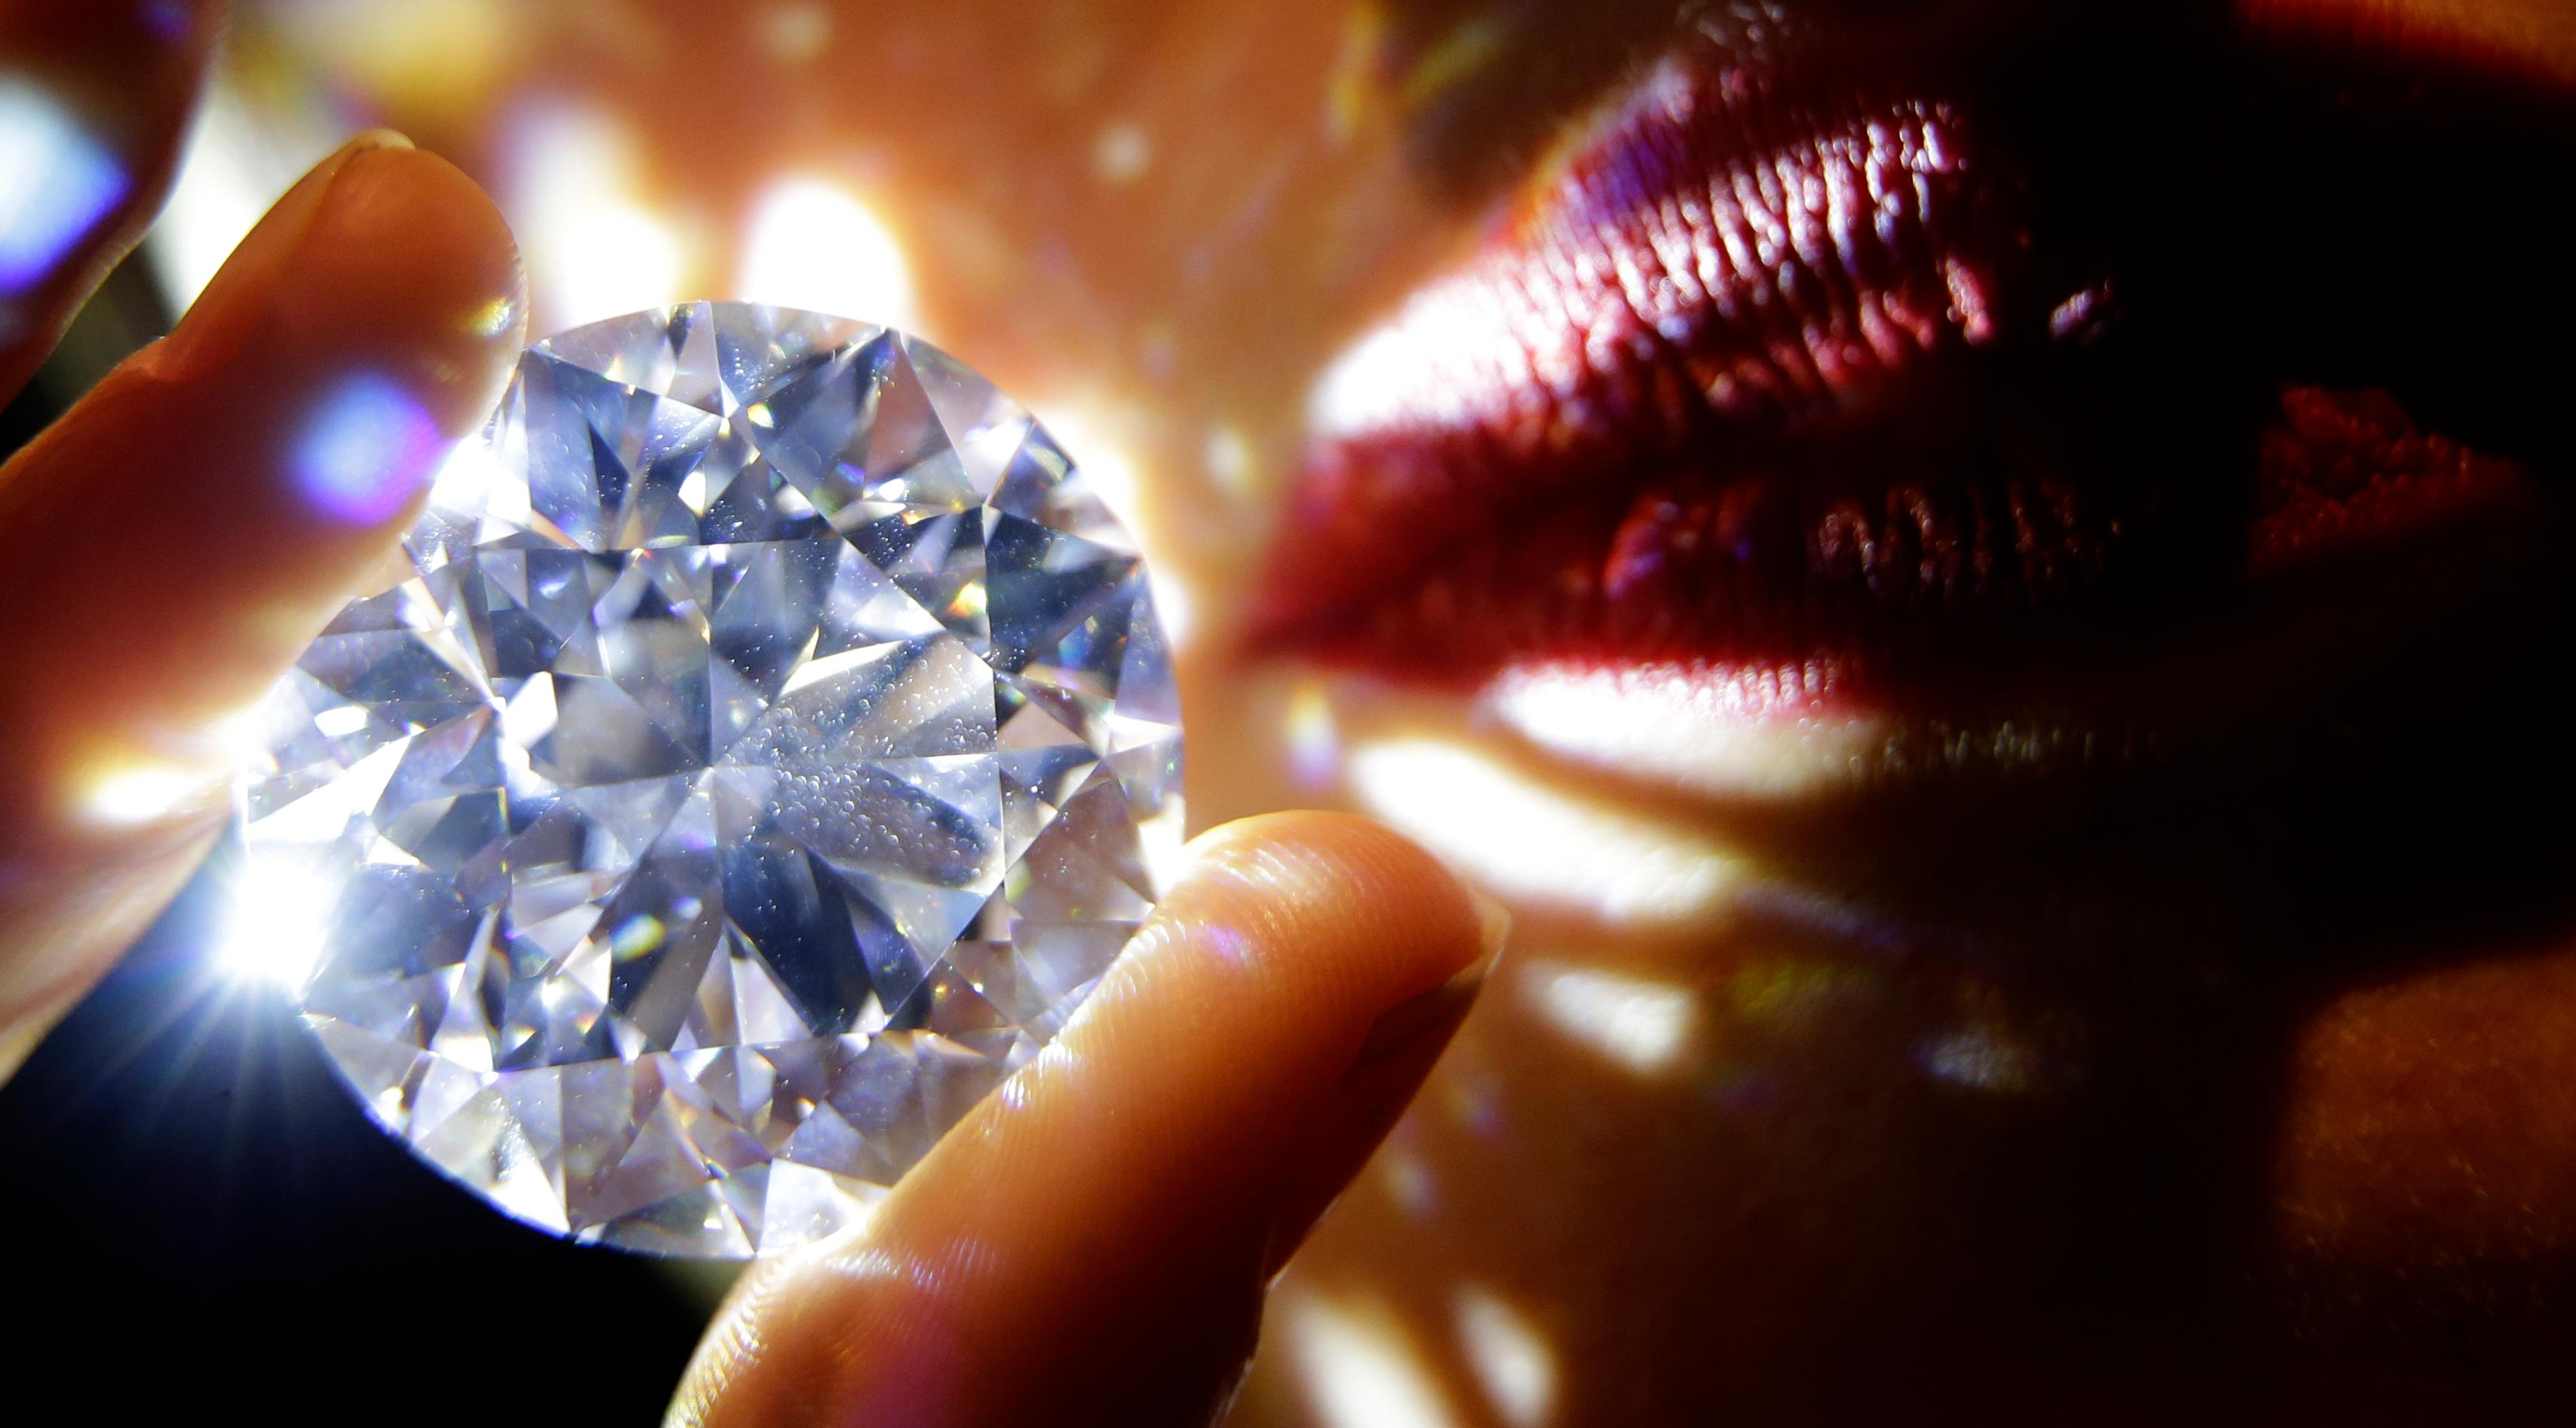 A 102.34, carat, D colour and flawless white diamond held by a model is displayed at Sotheby's auction house in London, Thursday, Feb. 8, 2018. The diamond is the world largest known round